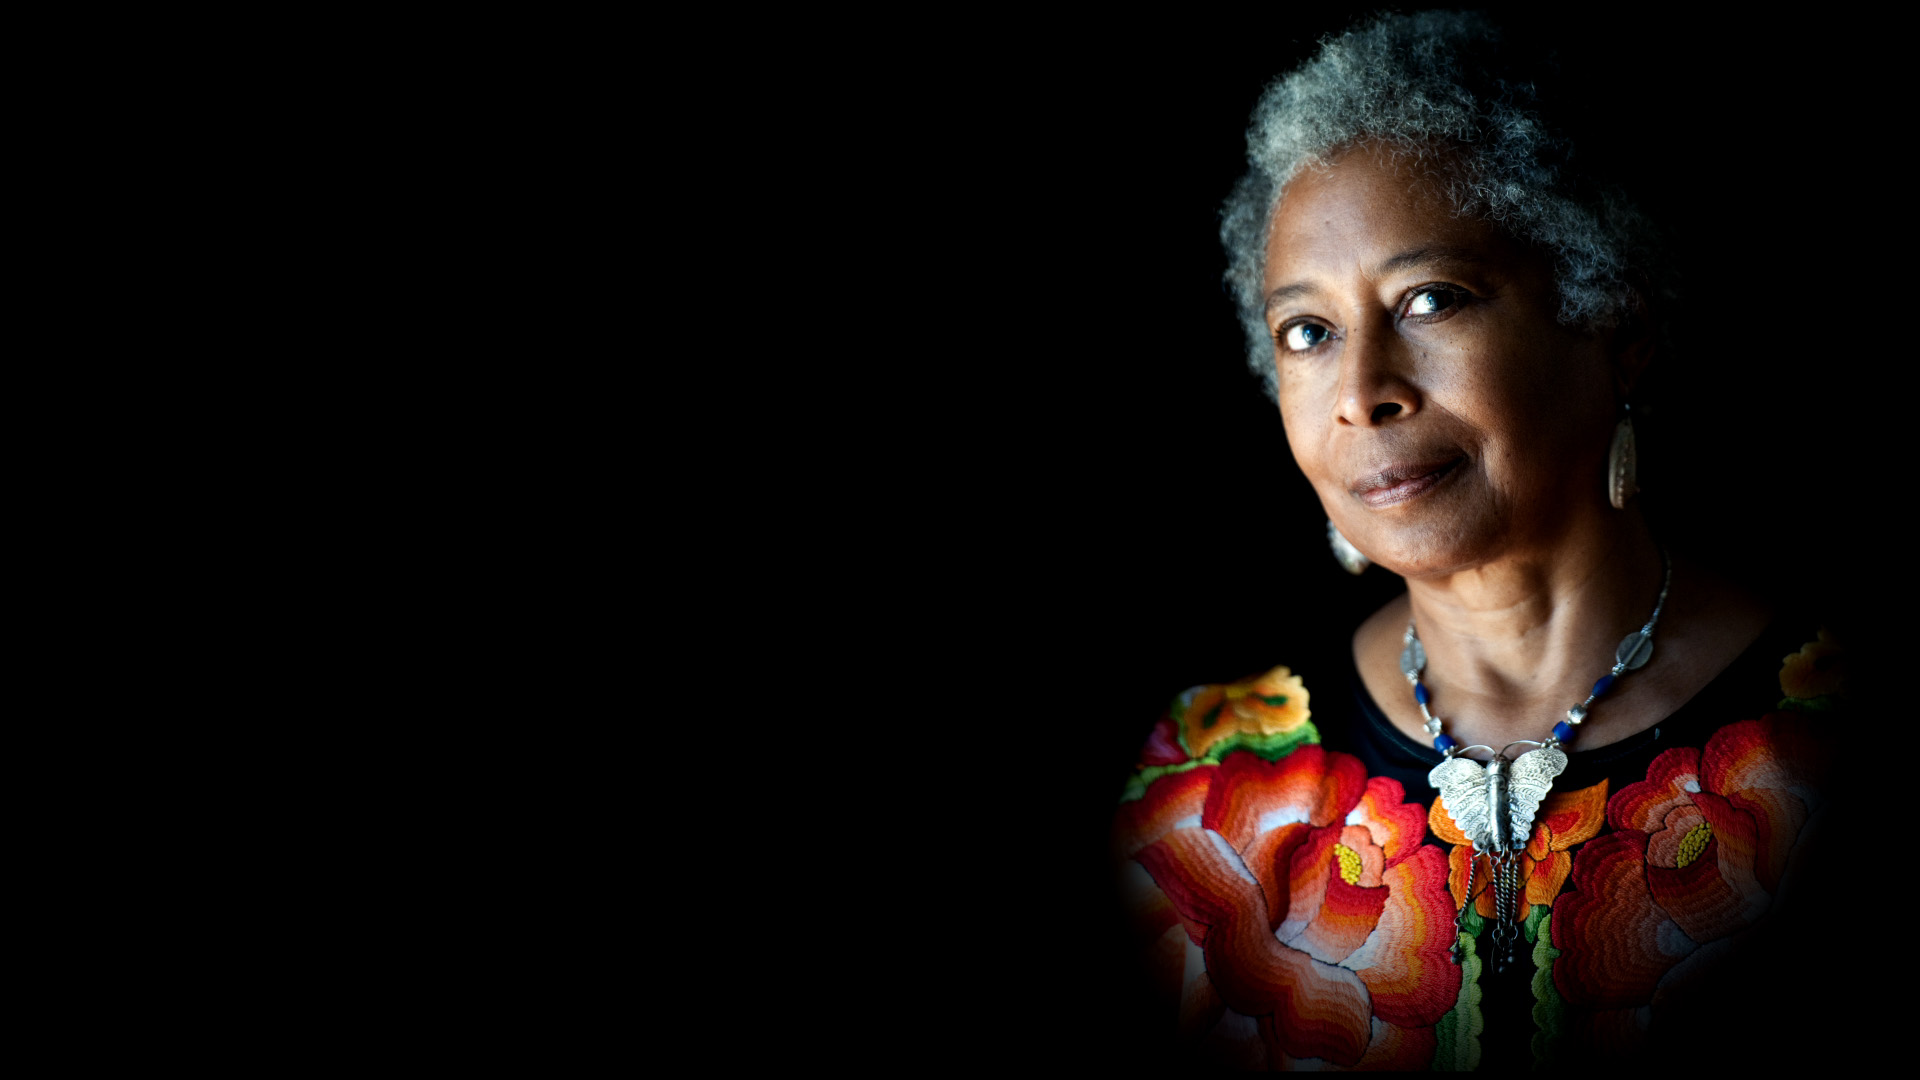 alice walker essays beauty An essay or paper on beauty and self-esteem beauty: when the other dancer is the self the narrative beauty: when the other dancer is the self, represents the specific story from alice walker's autobiography, which had a great impact on her life.